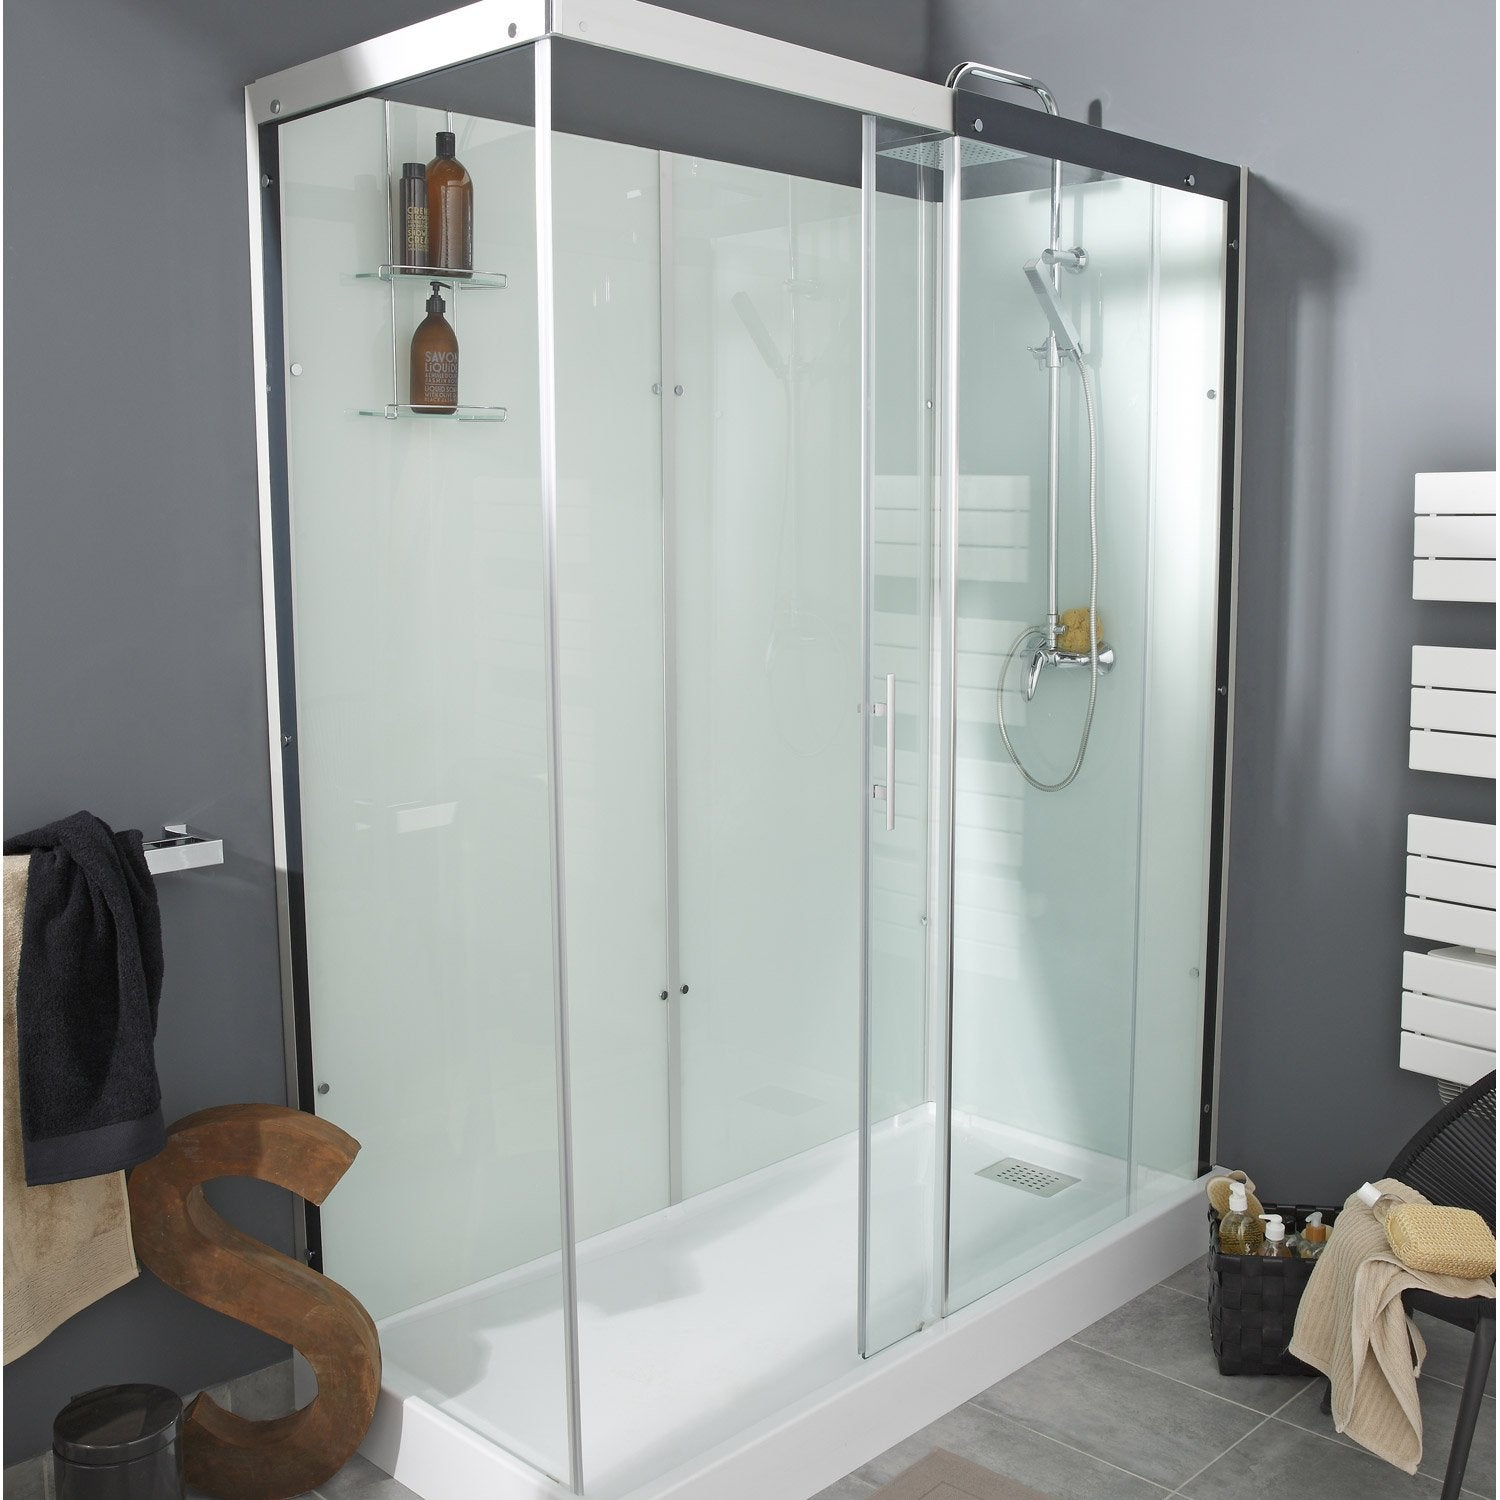 Cabine de douche rectangulaire 170x80 cm thalaglass 2 for Leroy merlin mitigeur bain douche